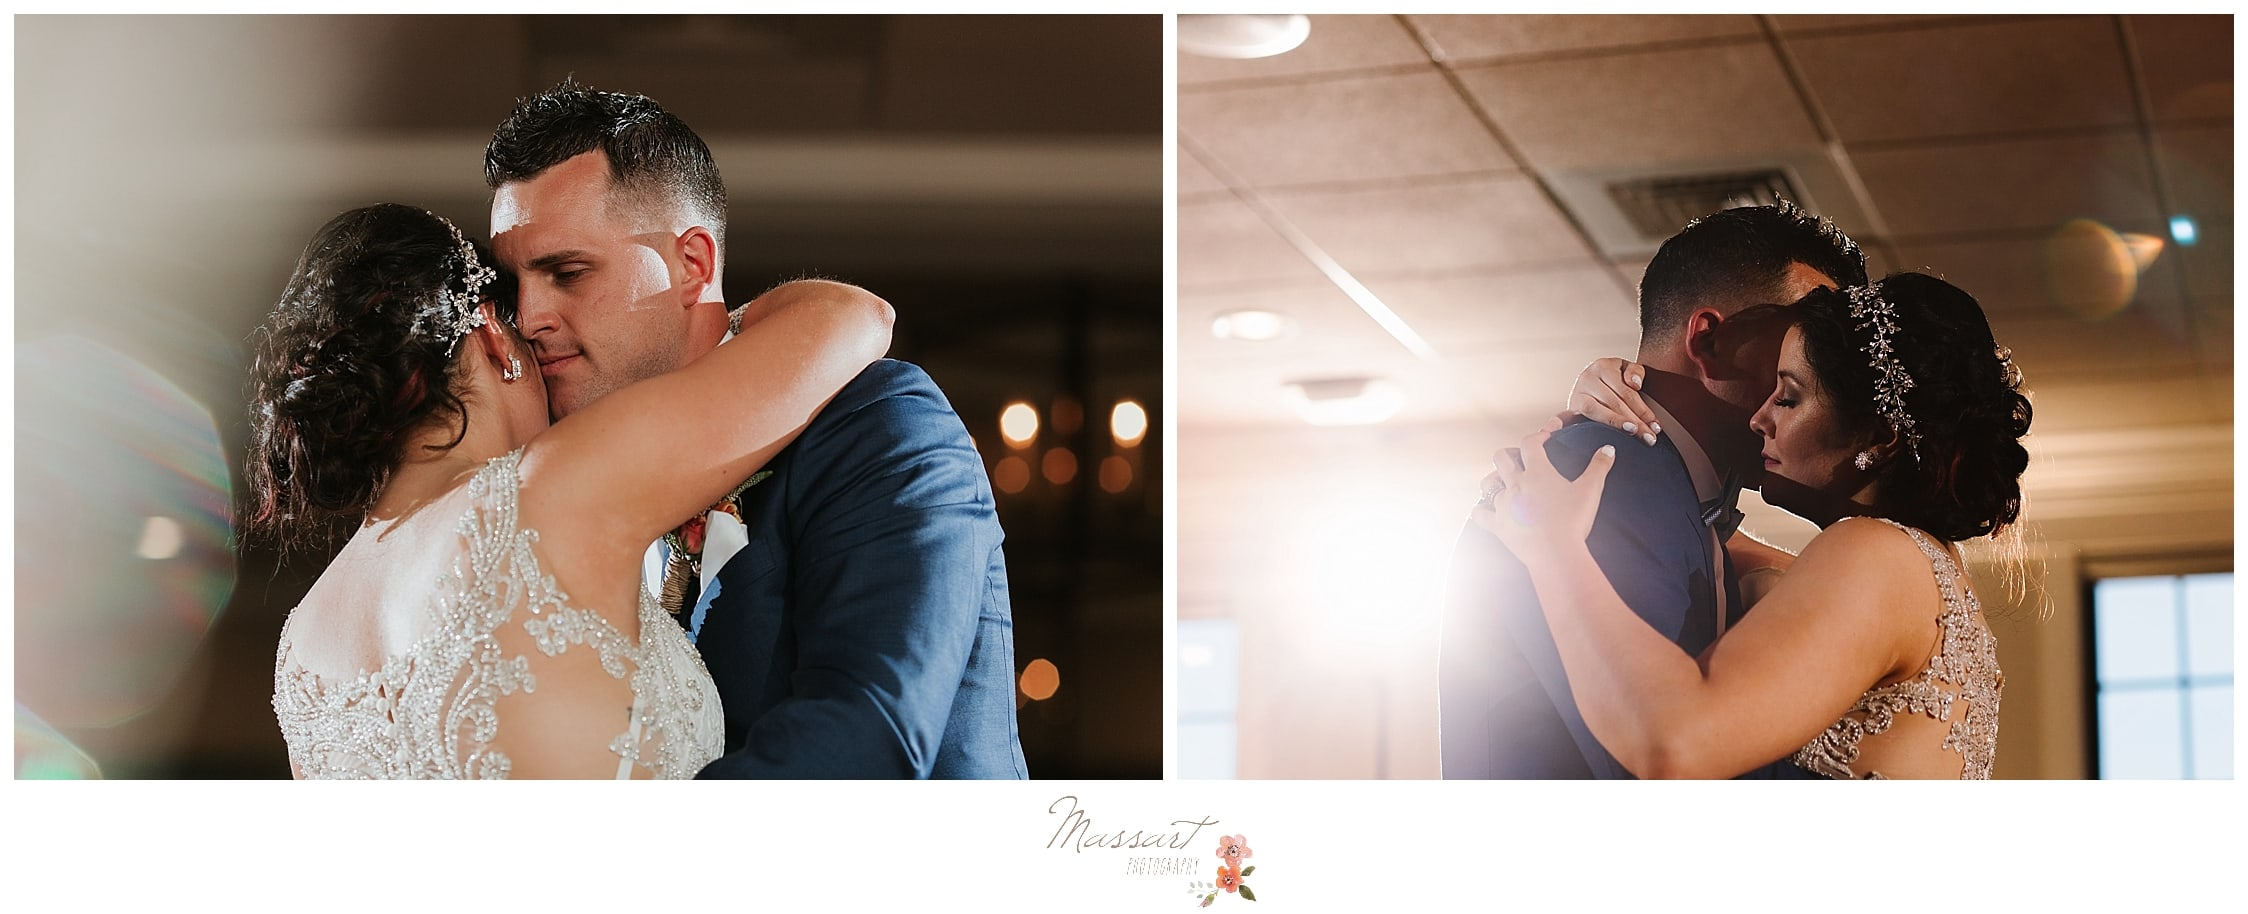 New husband and wife embrace during first dance at reception in RI photographed by Massart Photography who offer maternity, newborn, family and cake smash sessions.